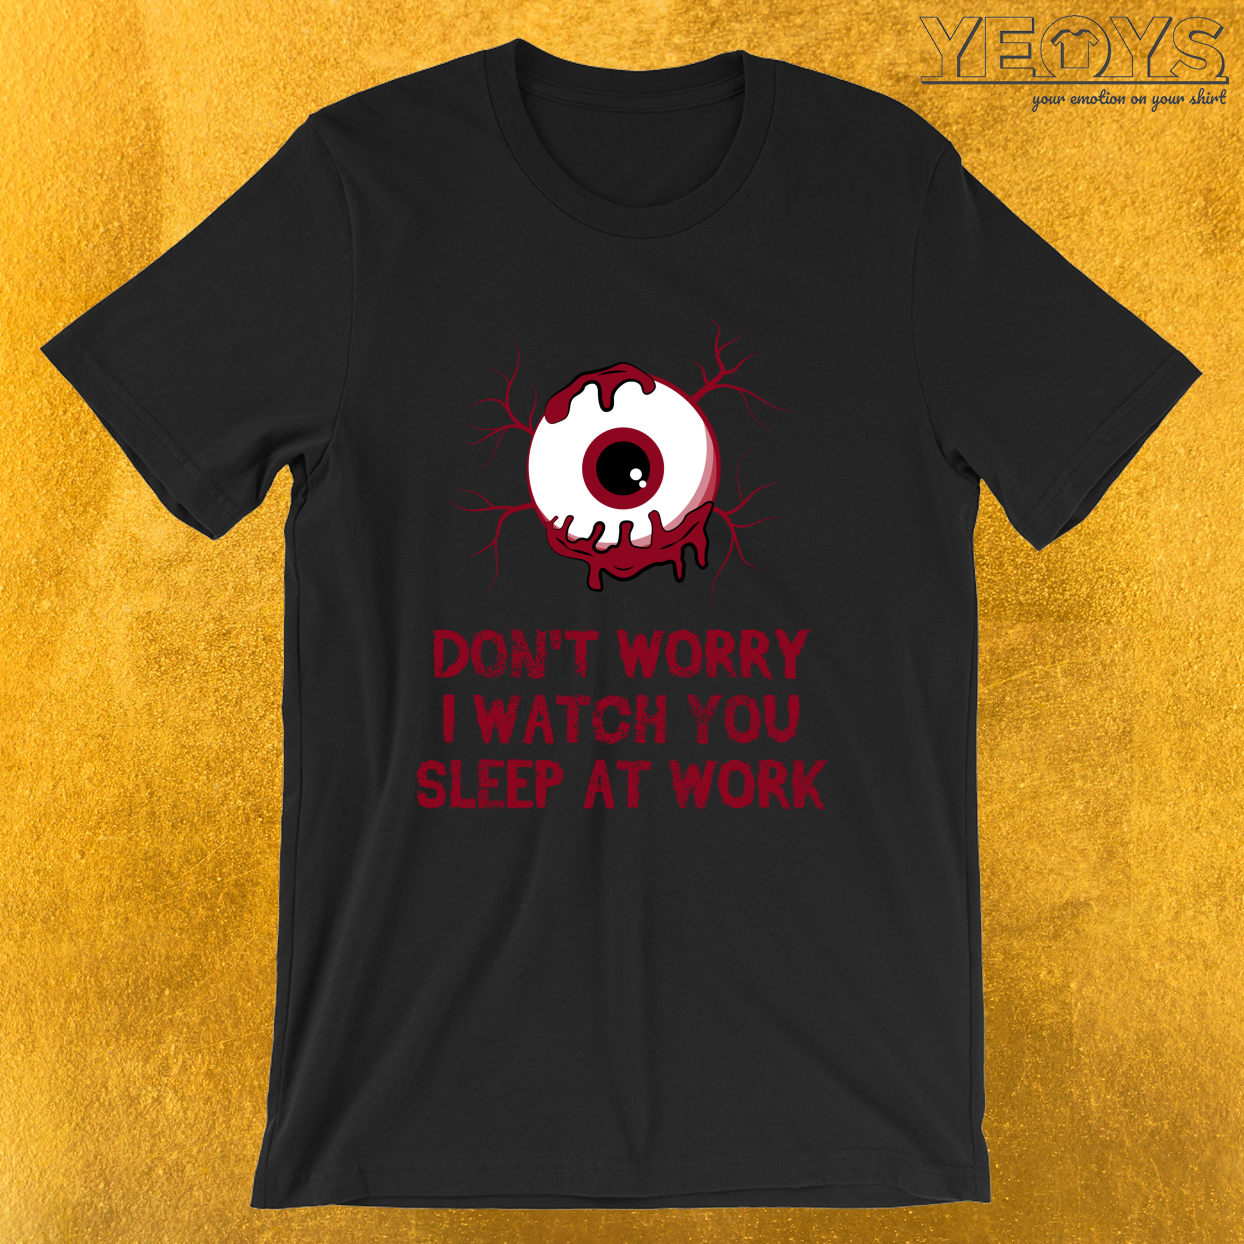 Don't Worry I Watch You Sleep At Work – Funny Horror Movie Tee